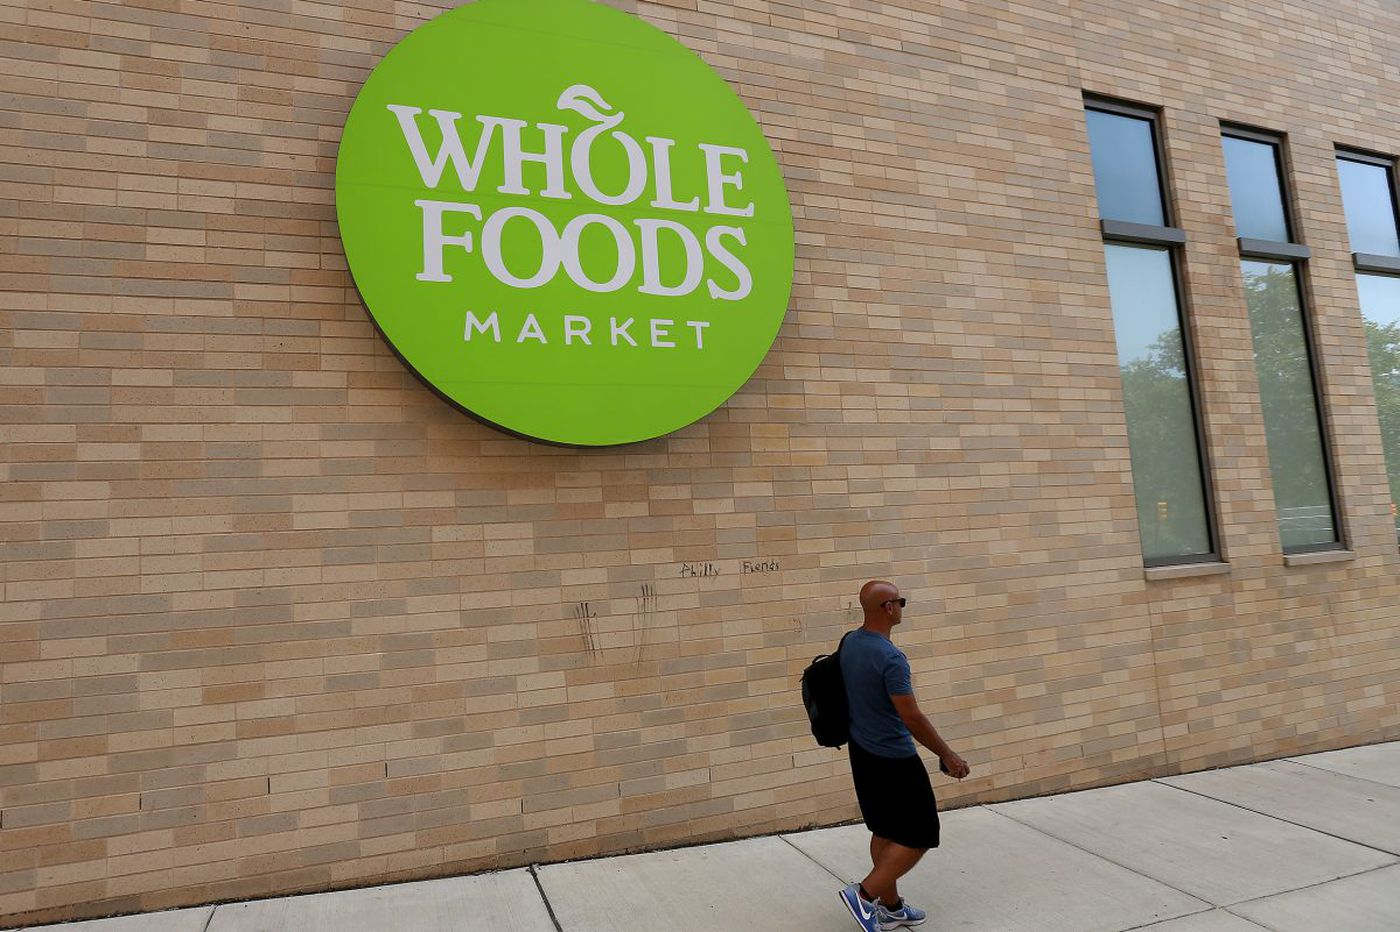 A Whole Foods in Philly confirmed employees have coronavirus, but workers worry 'we have no idea what's going on'